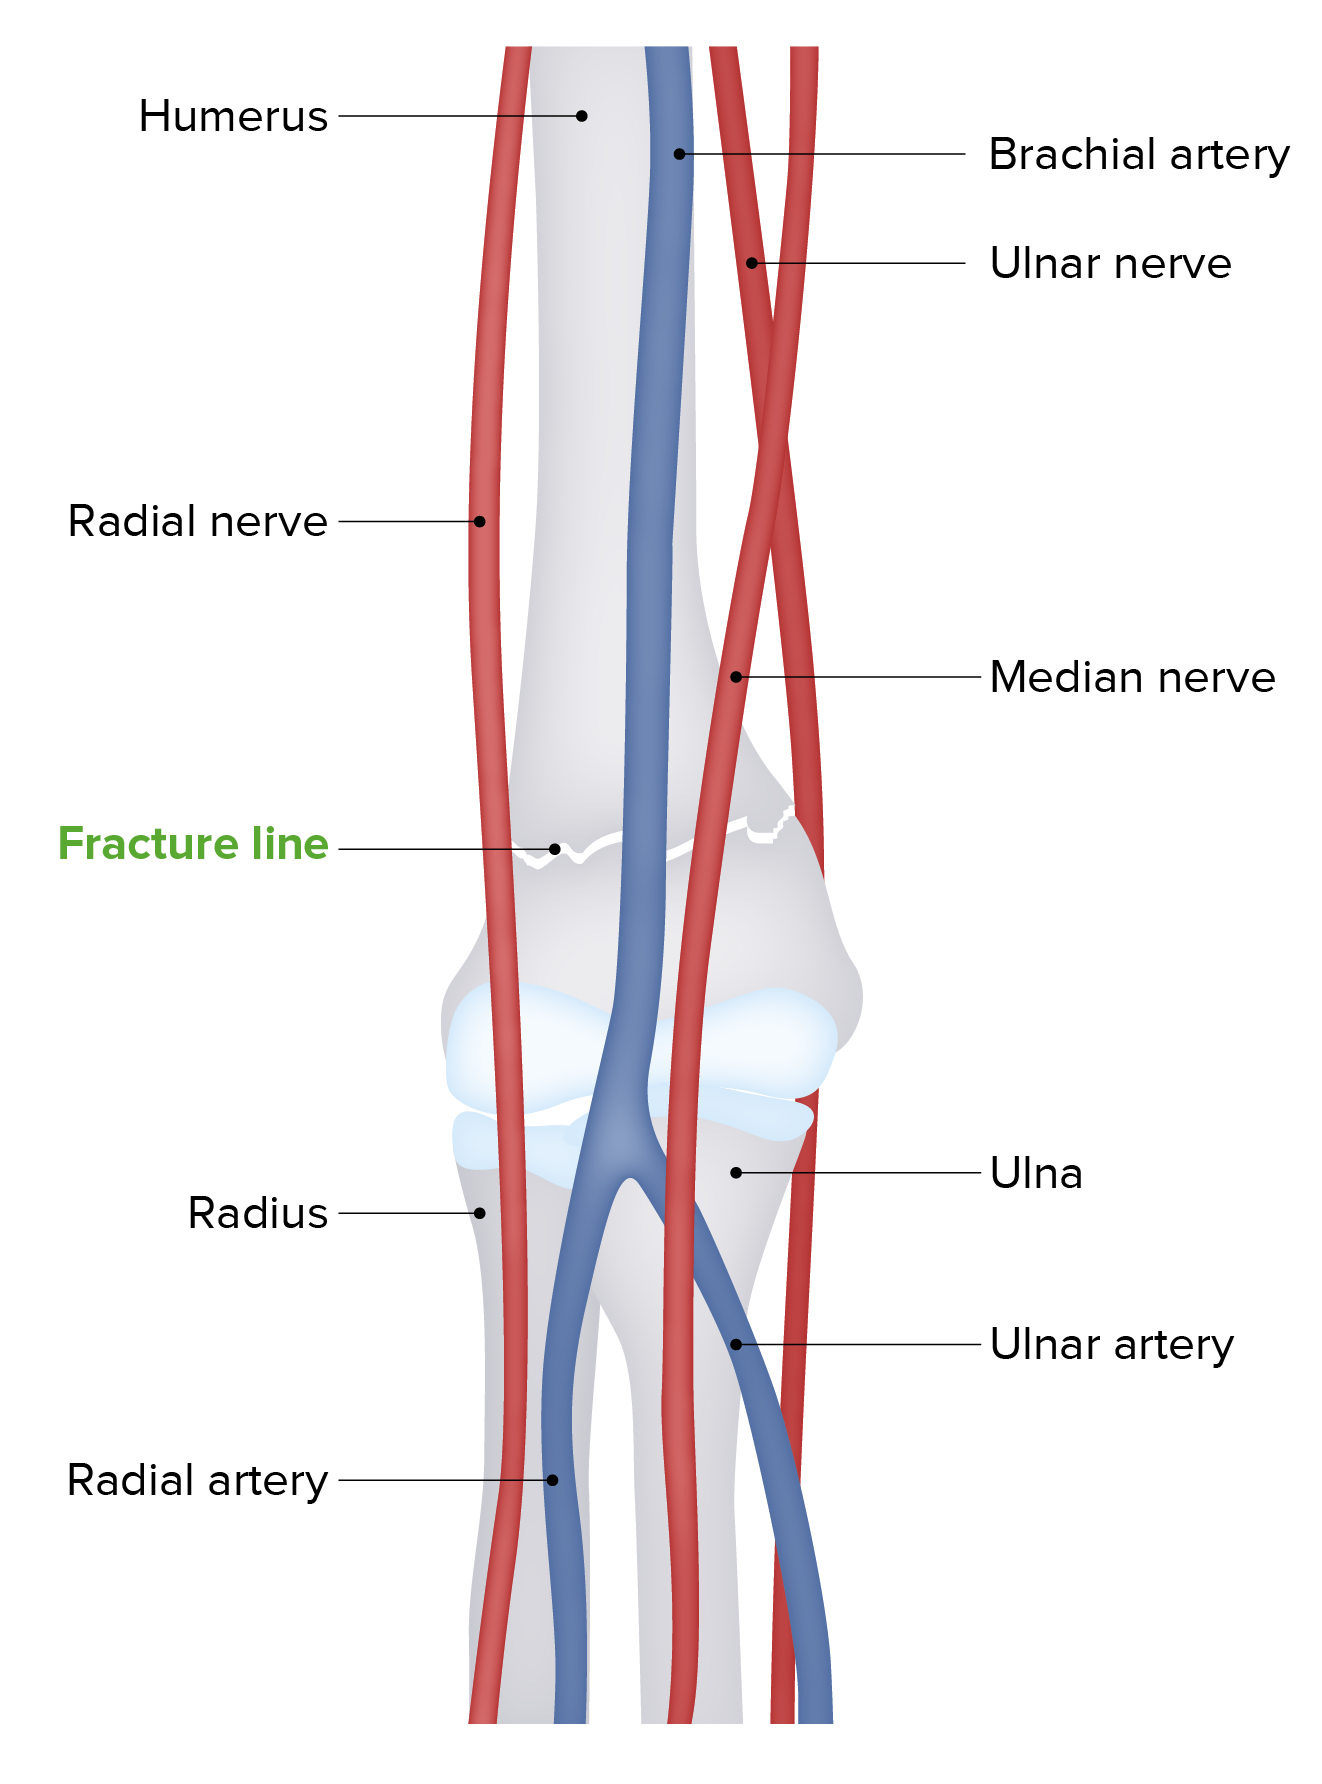 Overview anatomy diagram (fracture)